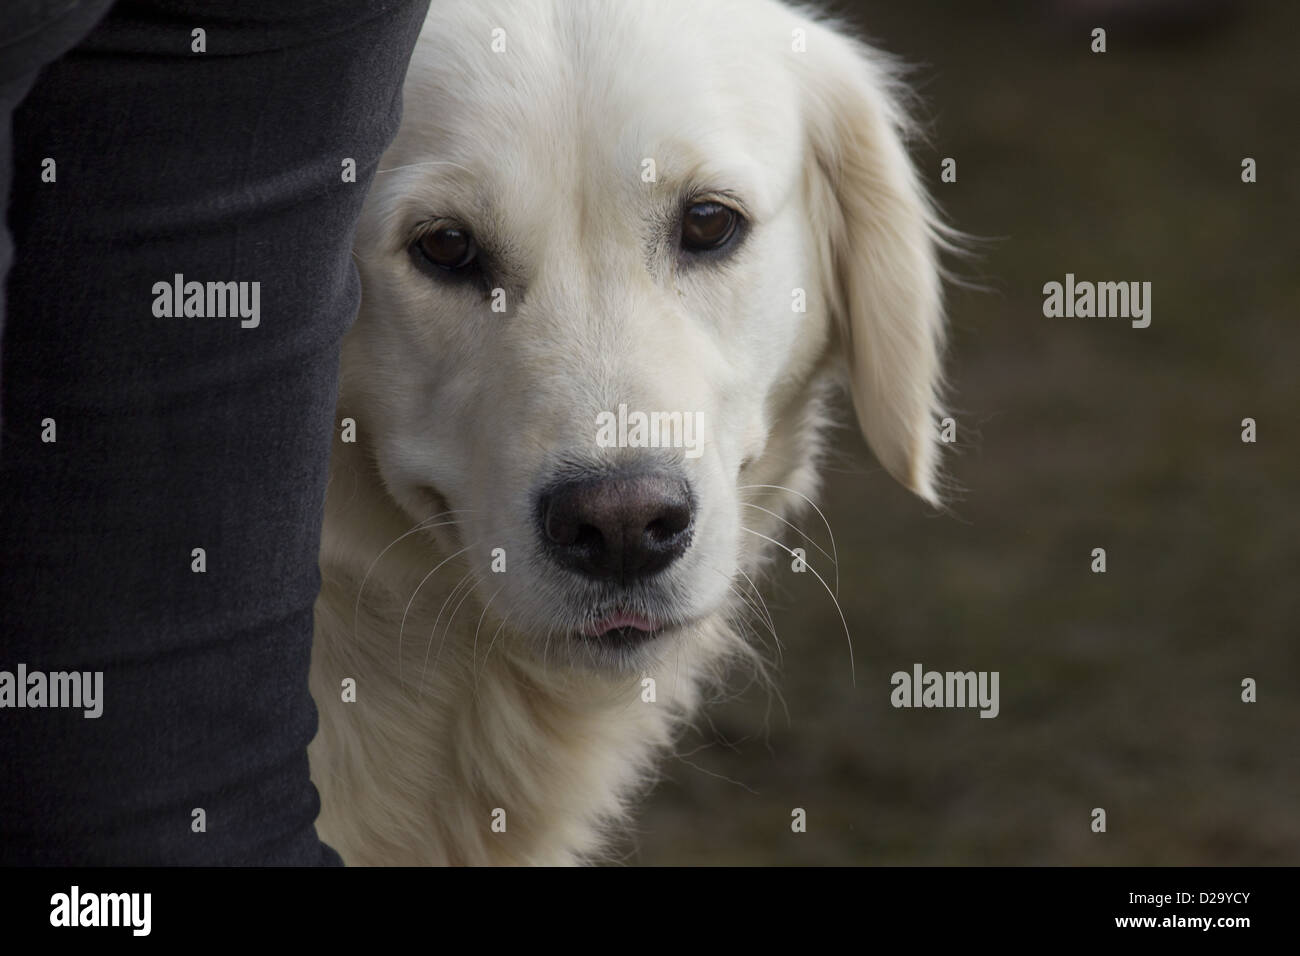 Golden labrador retriever peeping out behind its owners leg - Stock Image